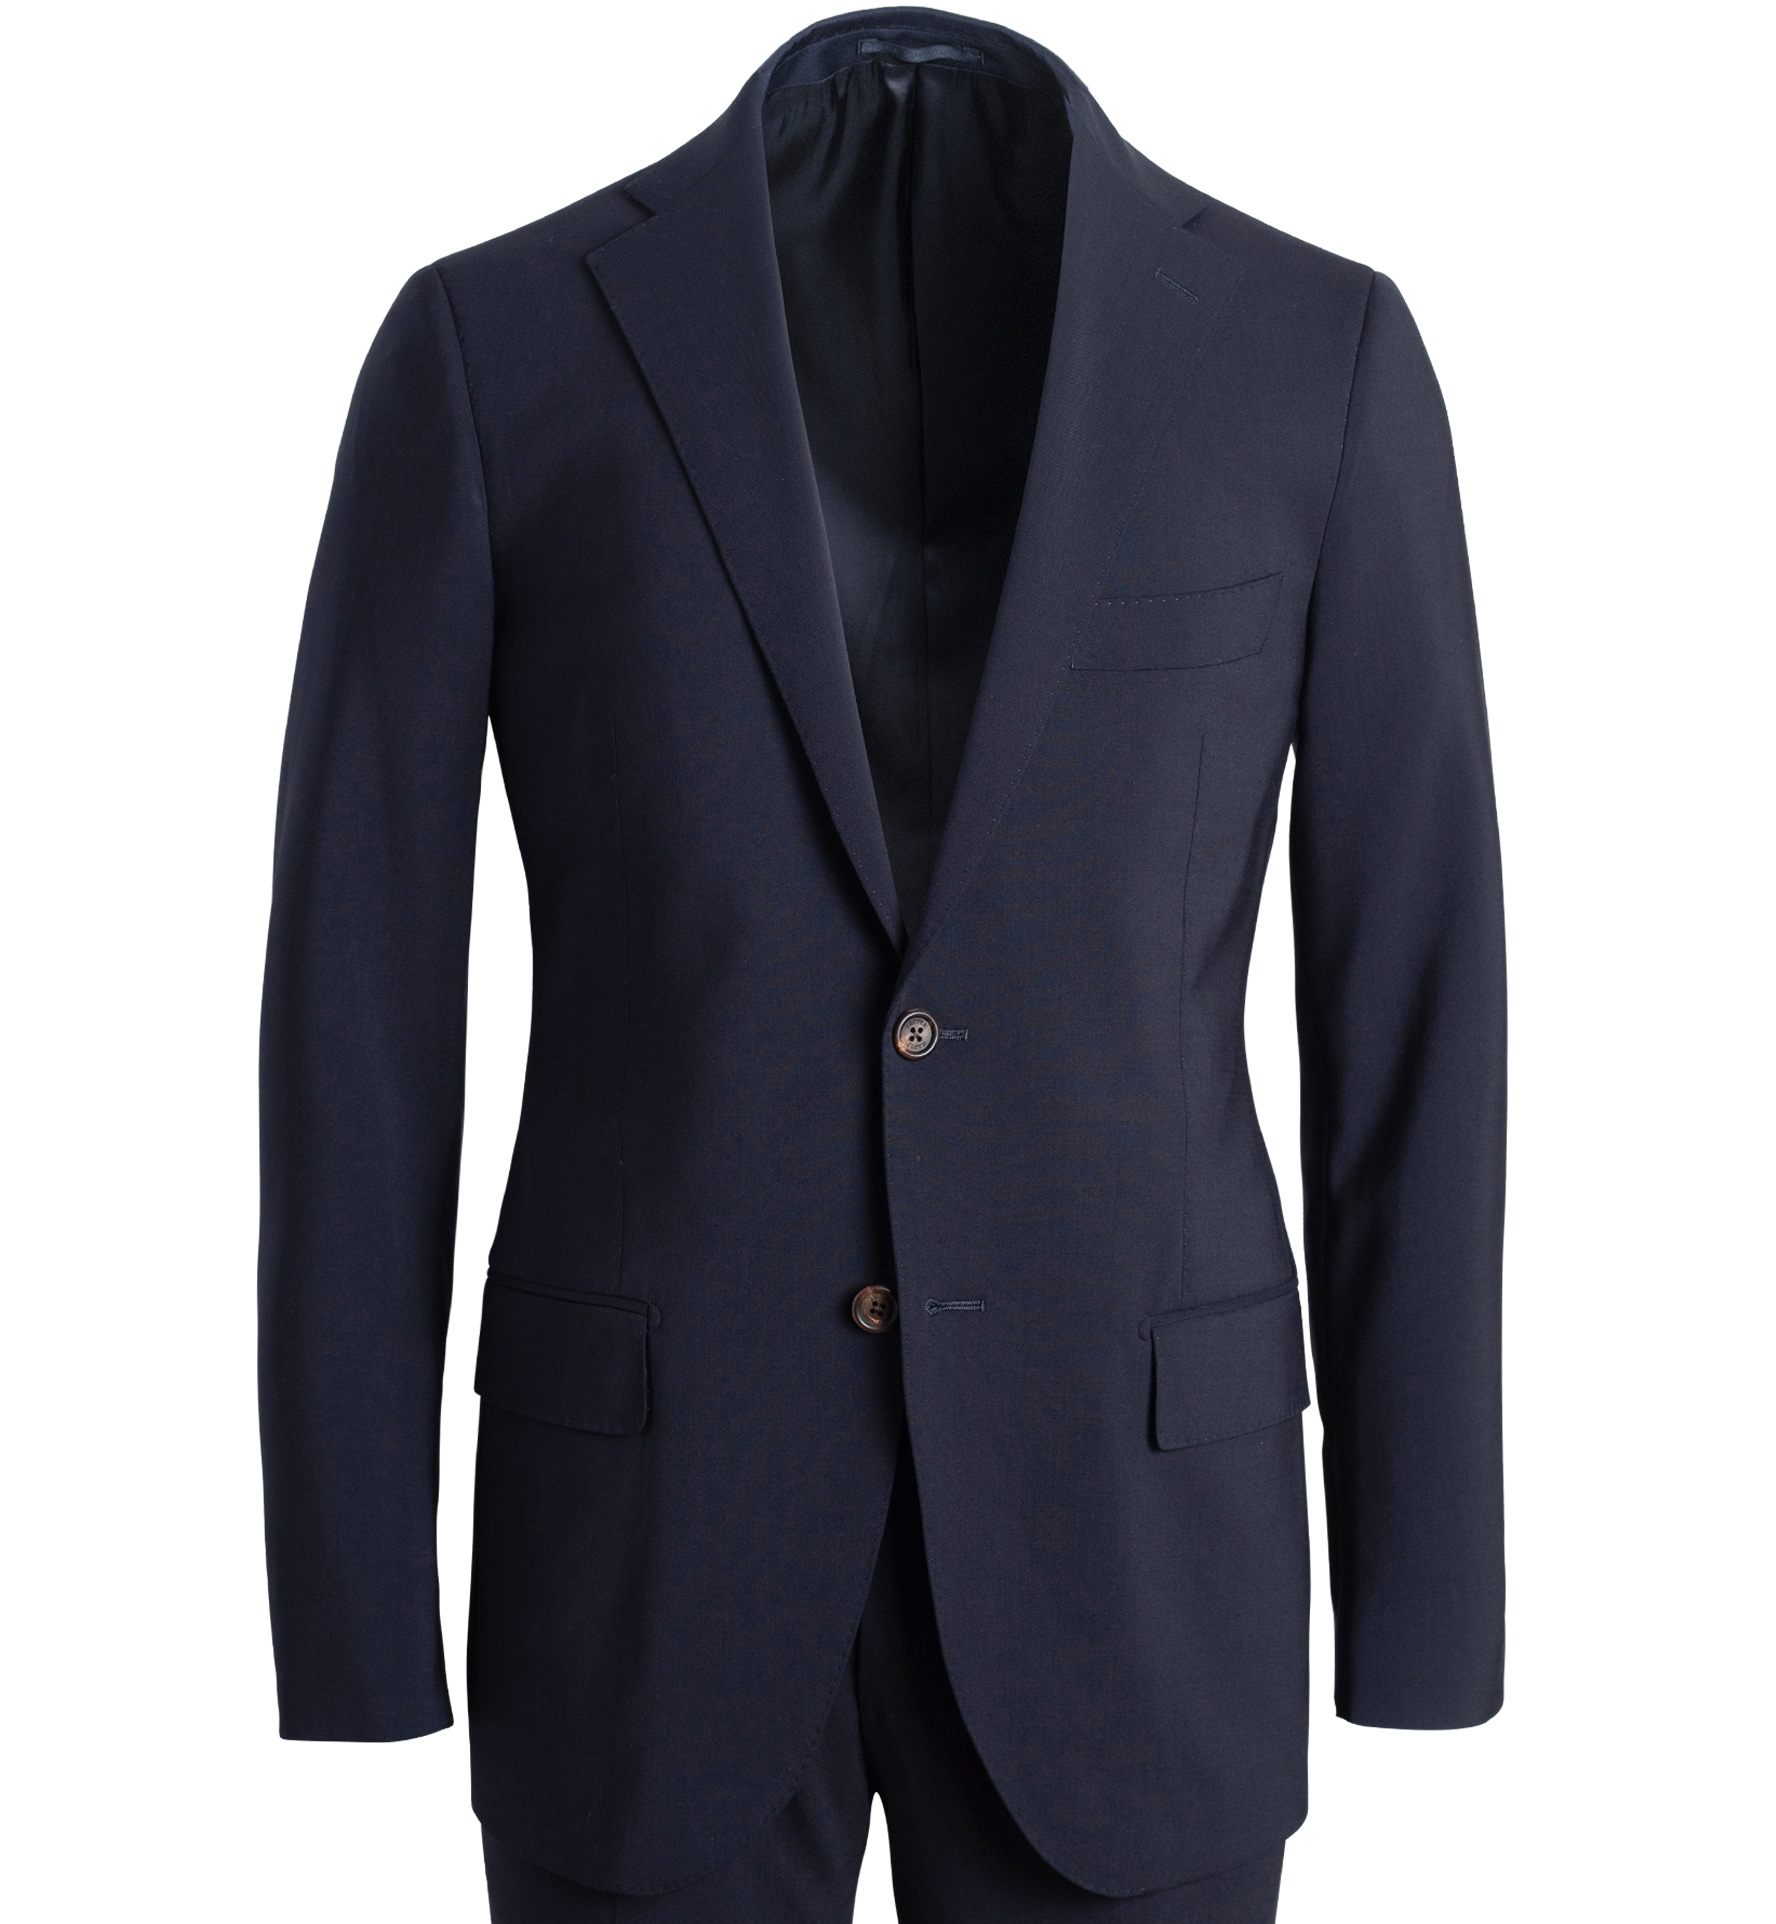 Zoom Image of Allen Navy Stretch Tropical Wool Suit Jacket